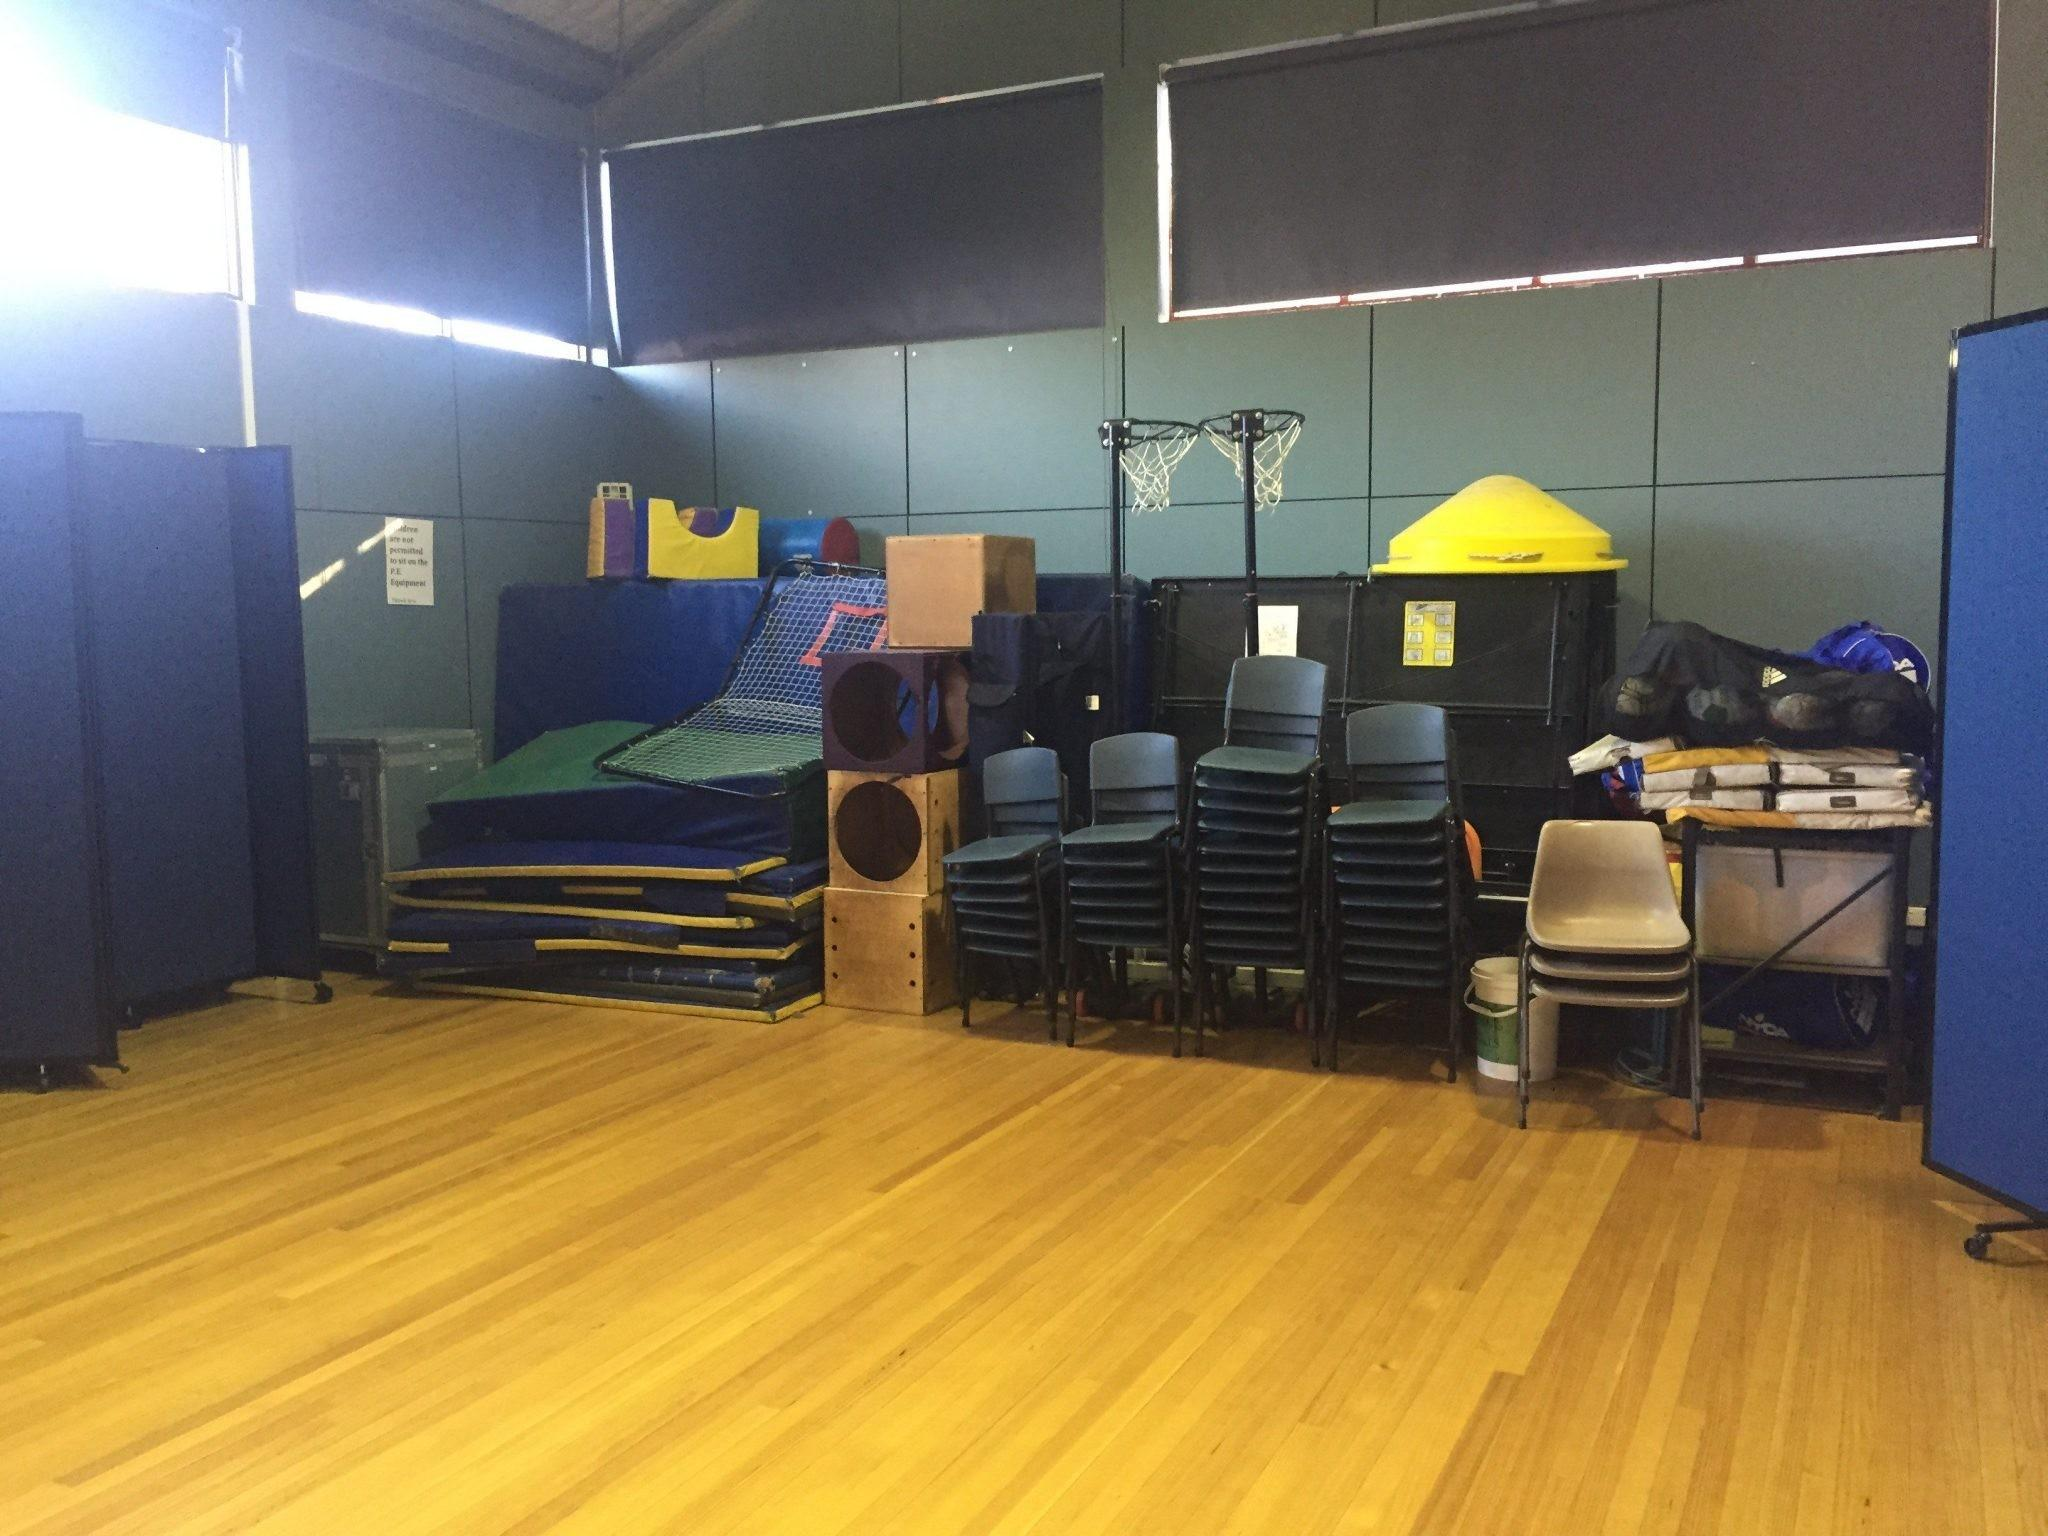 Hiding Unsightly Storage School Gym Using Portable